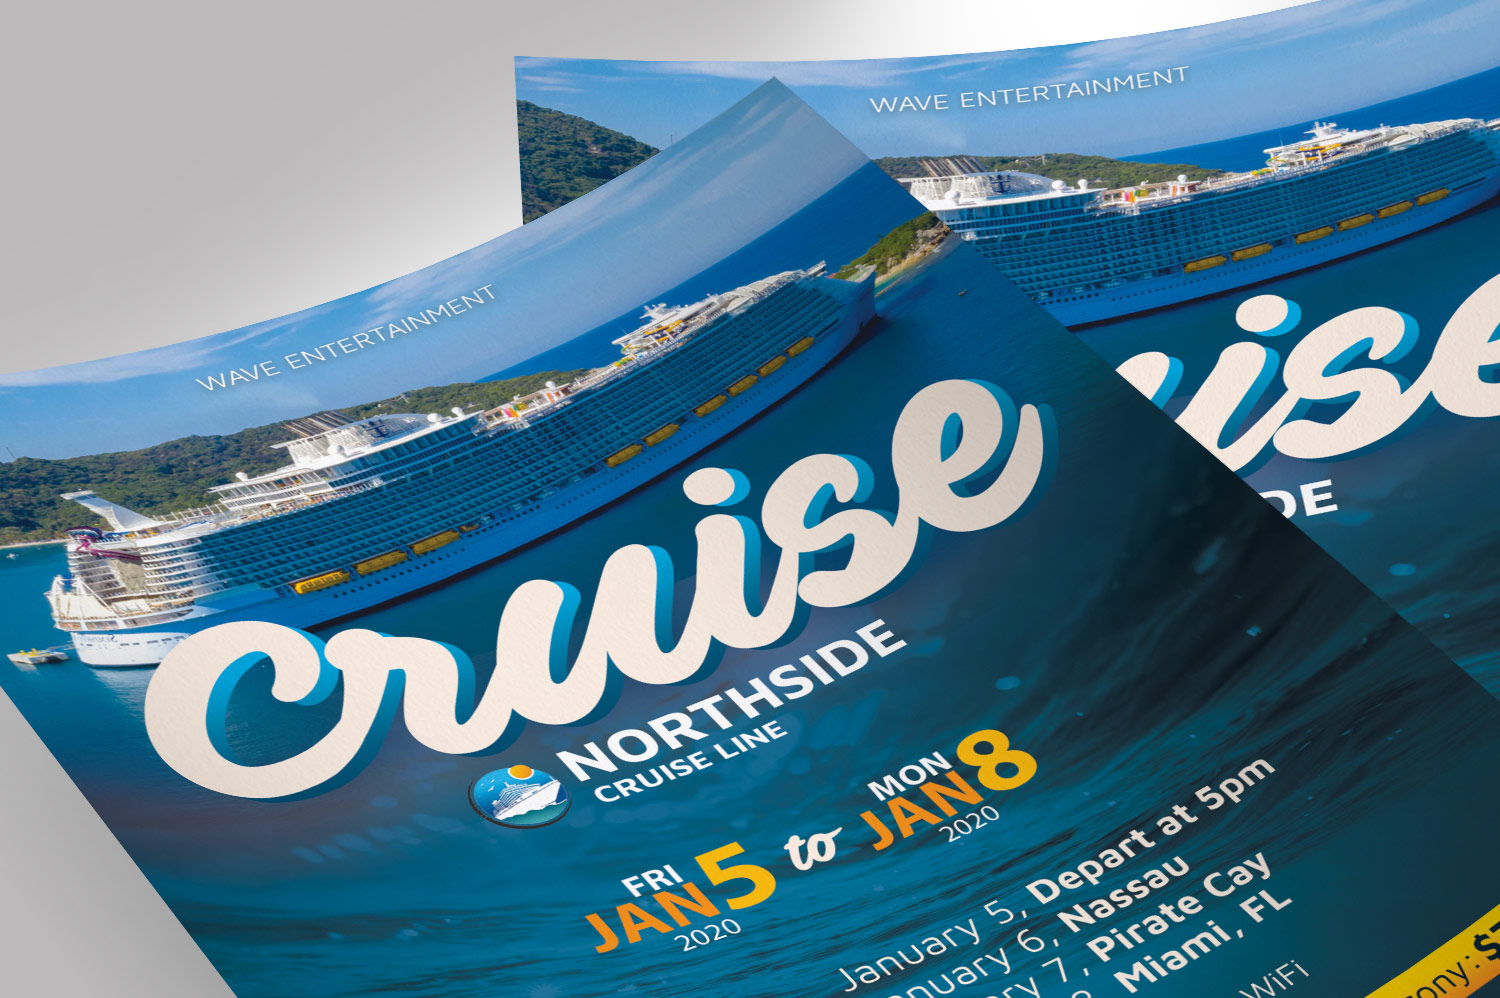 Cruise Travel Flyer Photoshop Template example image 5